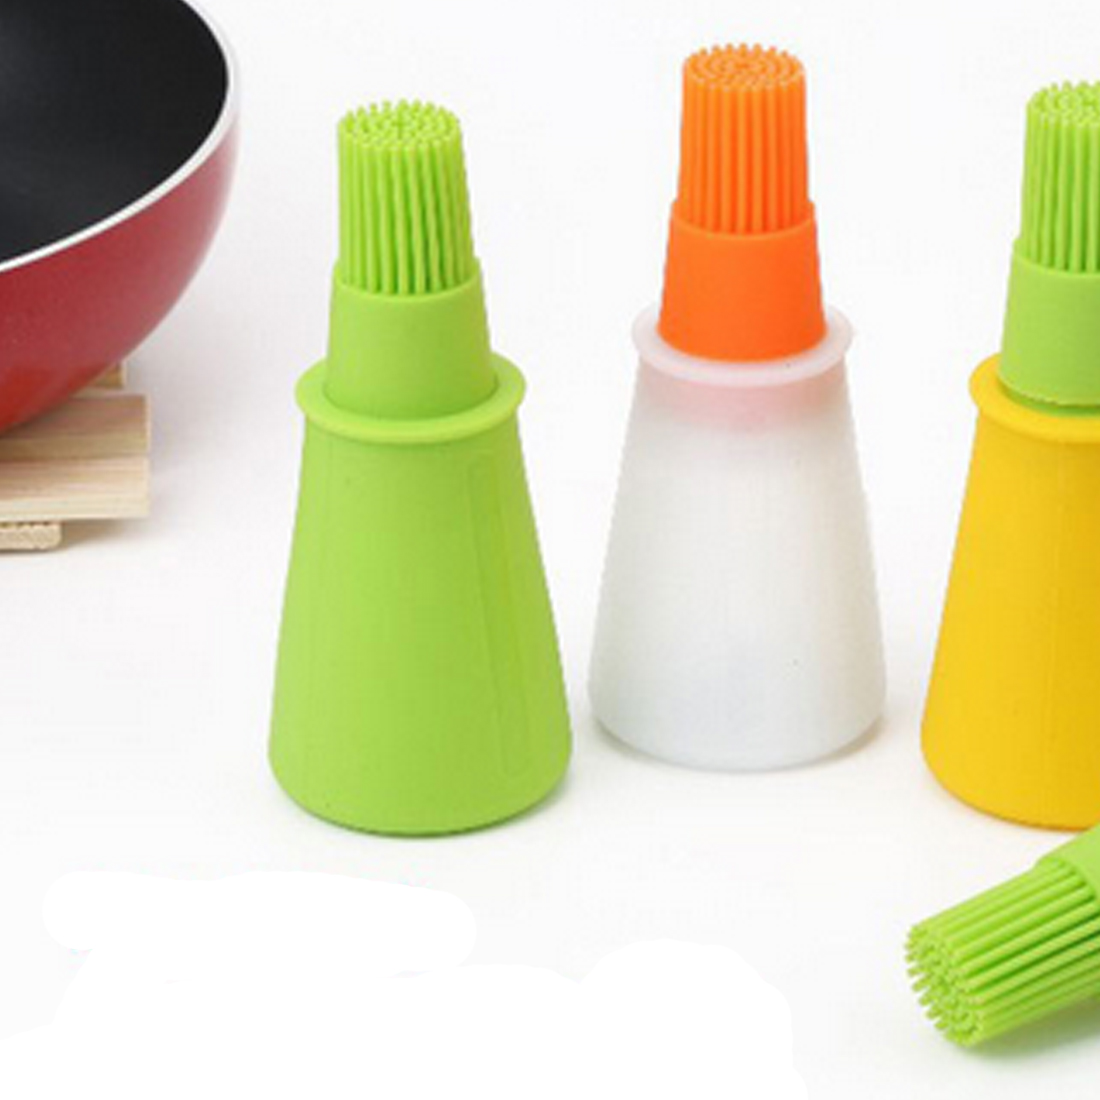 1 unid Grill Oil Bottle Brushes Tool Resistente al calor Silicona BBQ Basting Oil Brush Barbecue Cooking Pastelería Oil Brushes Color al azar